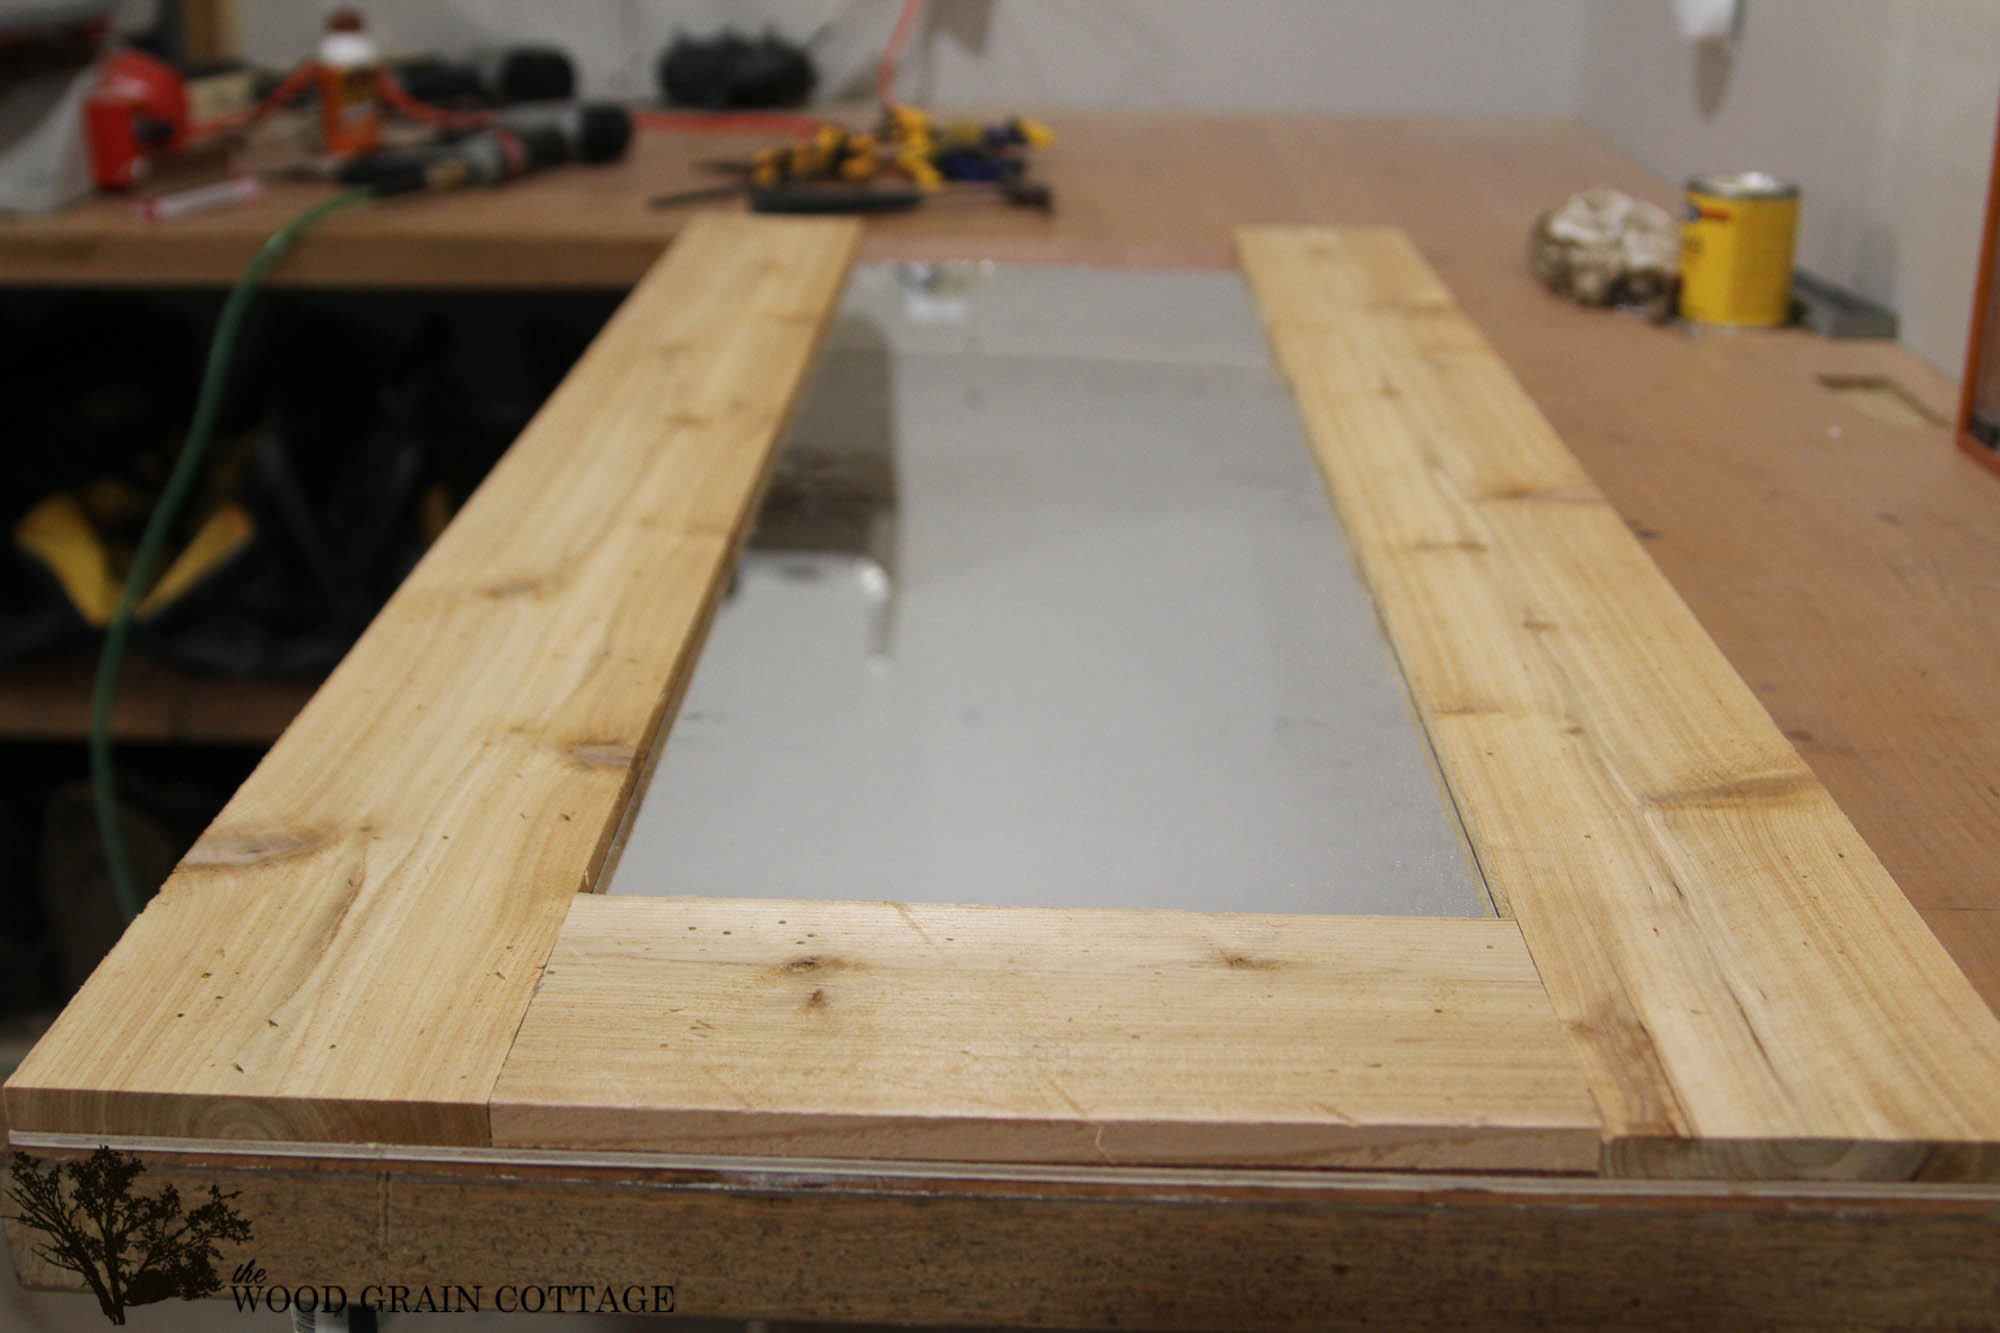 Best ideas about DIY Wood Frame . Save or Pin DIY Wood Framed Mirror The Wood Grain Cottage Now.